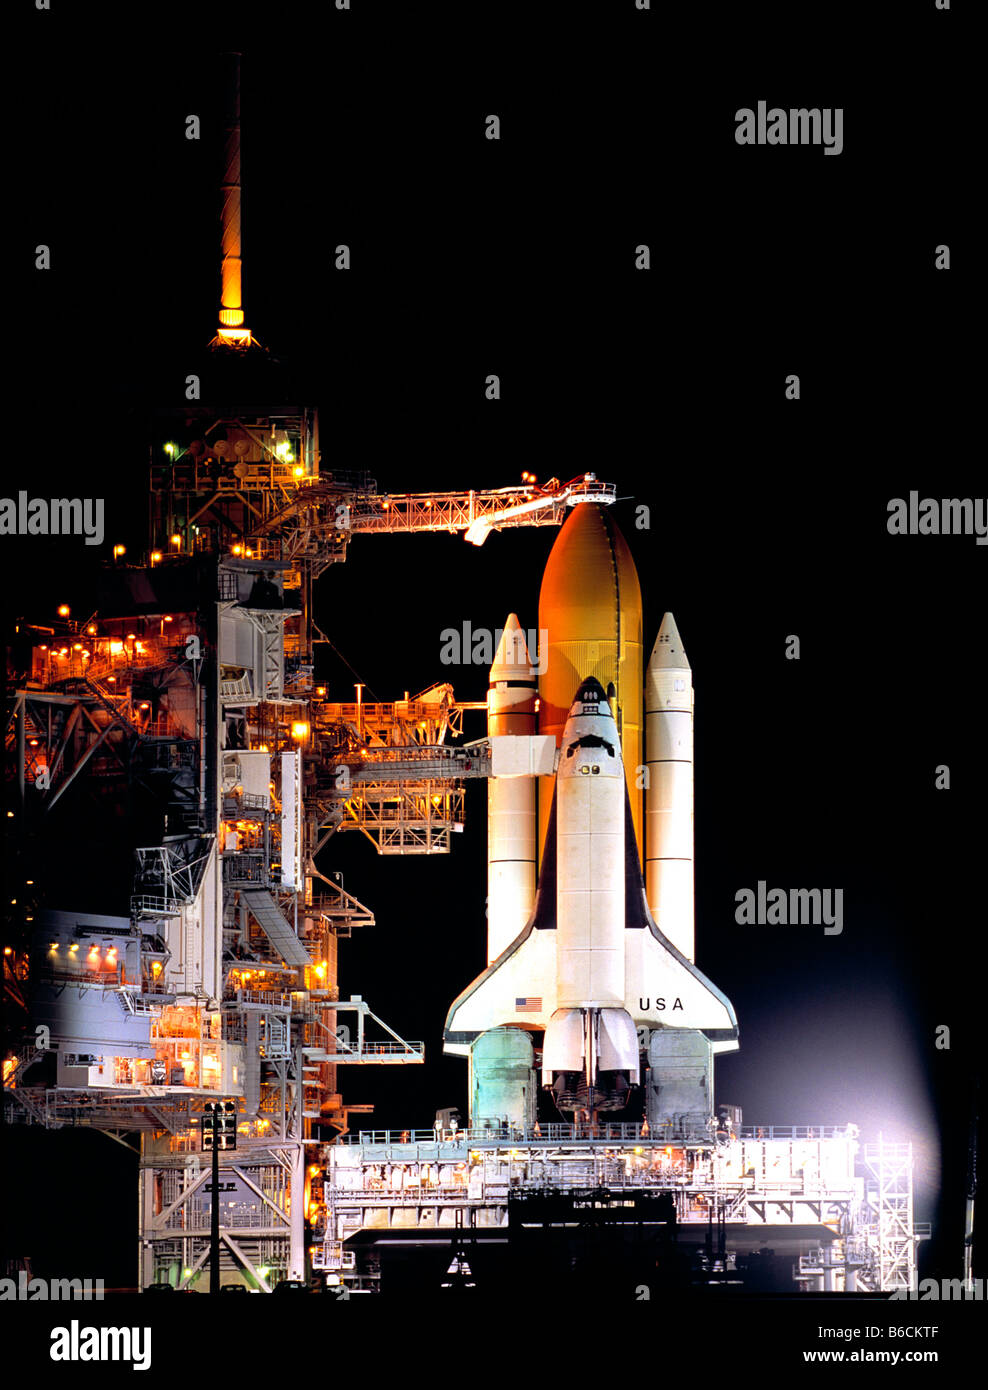 Space shuttle on launch pad at space center, Kennedy Space Center, Florida, USA - Stock Image